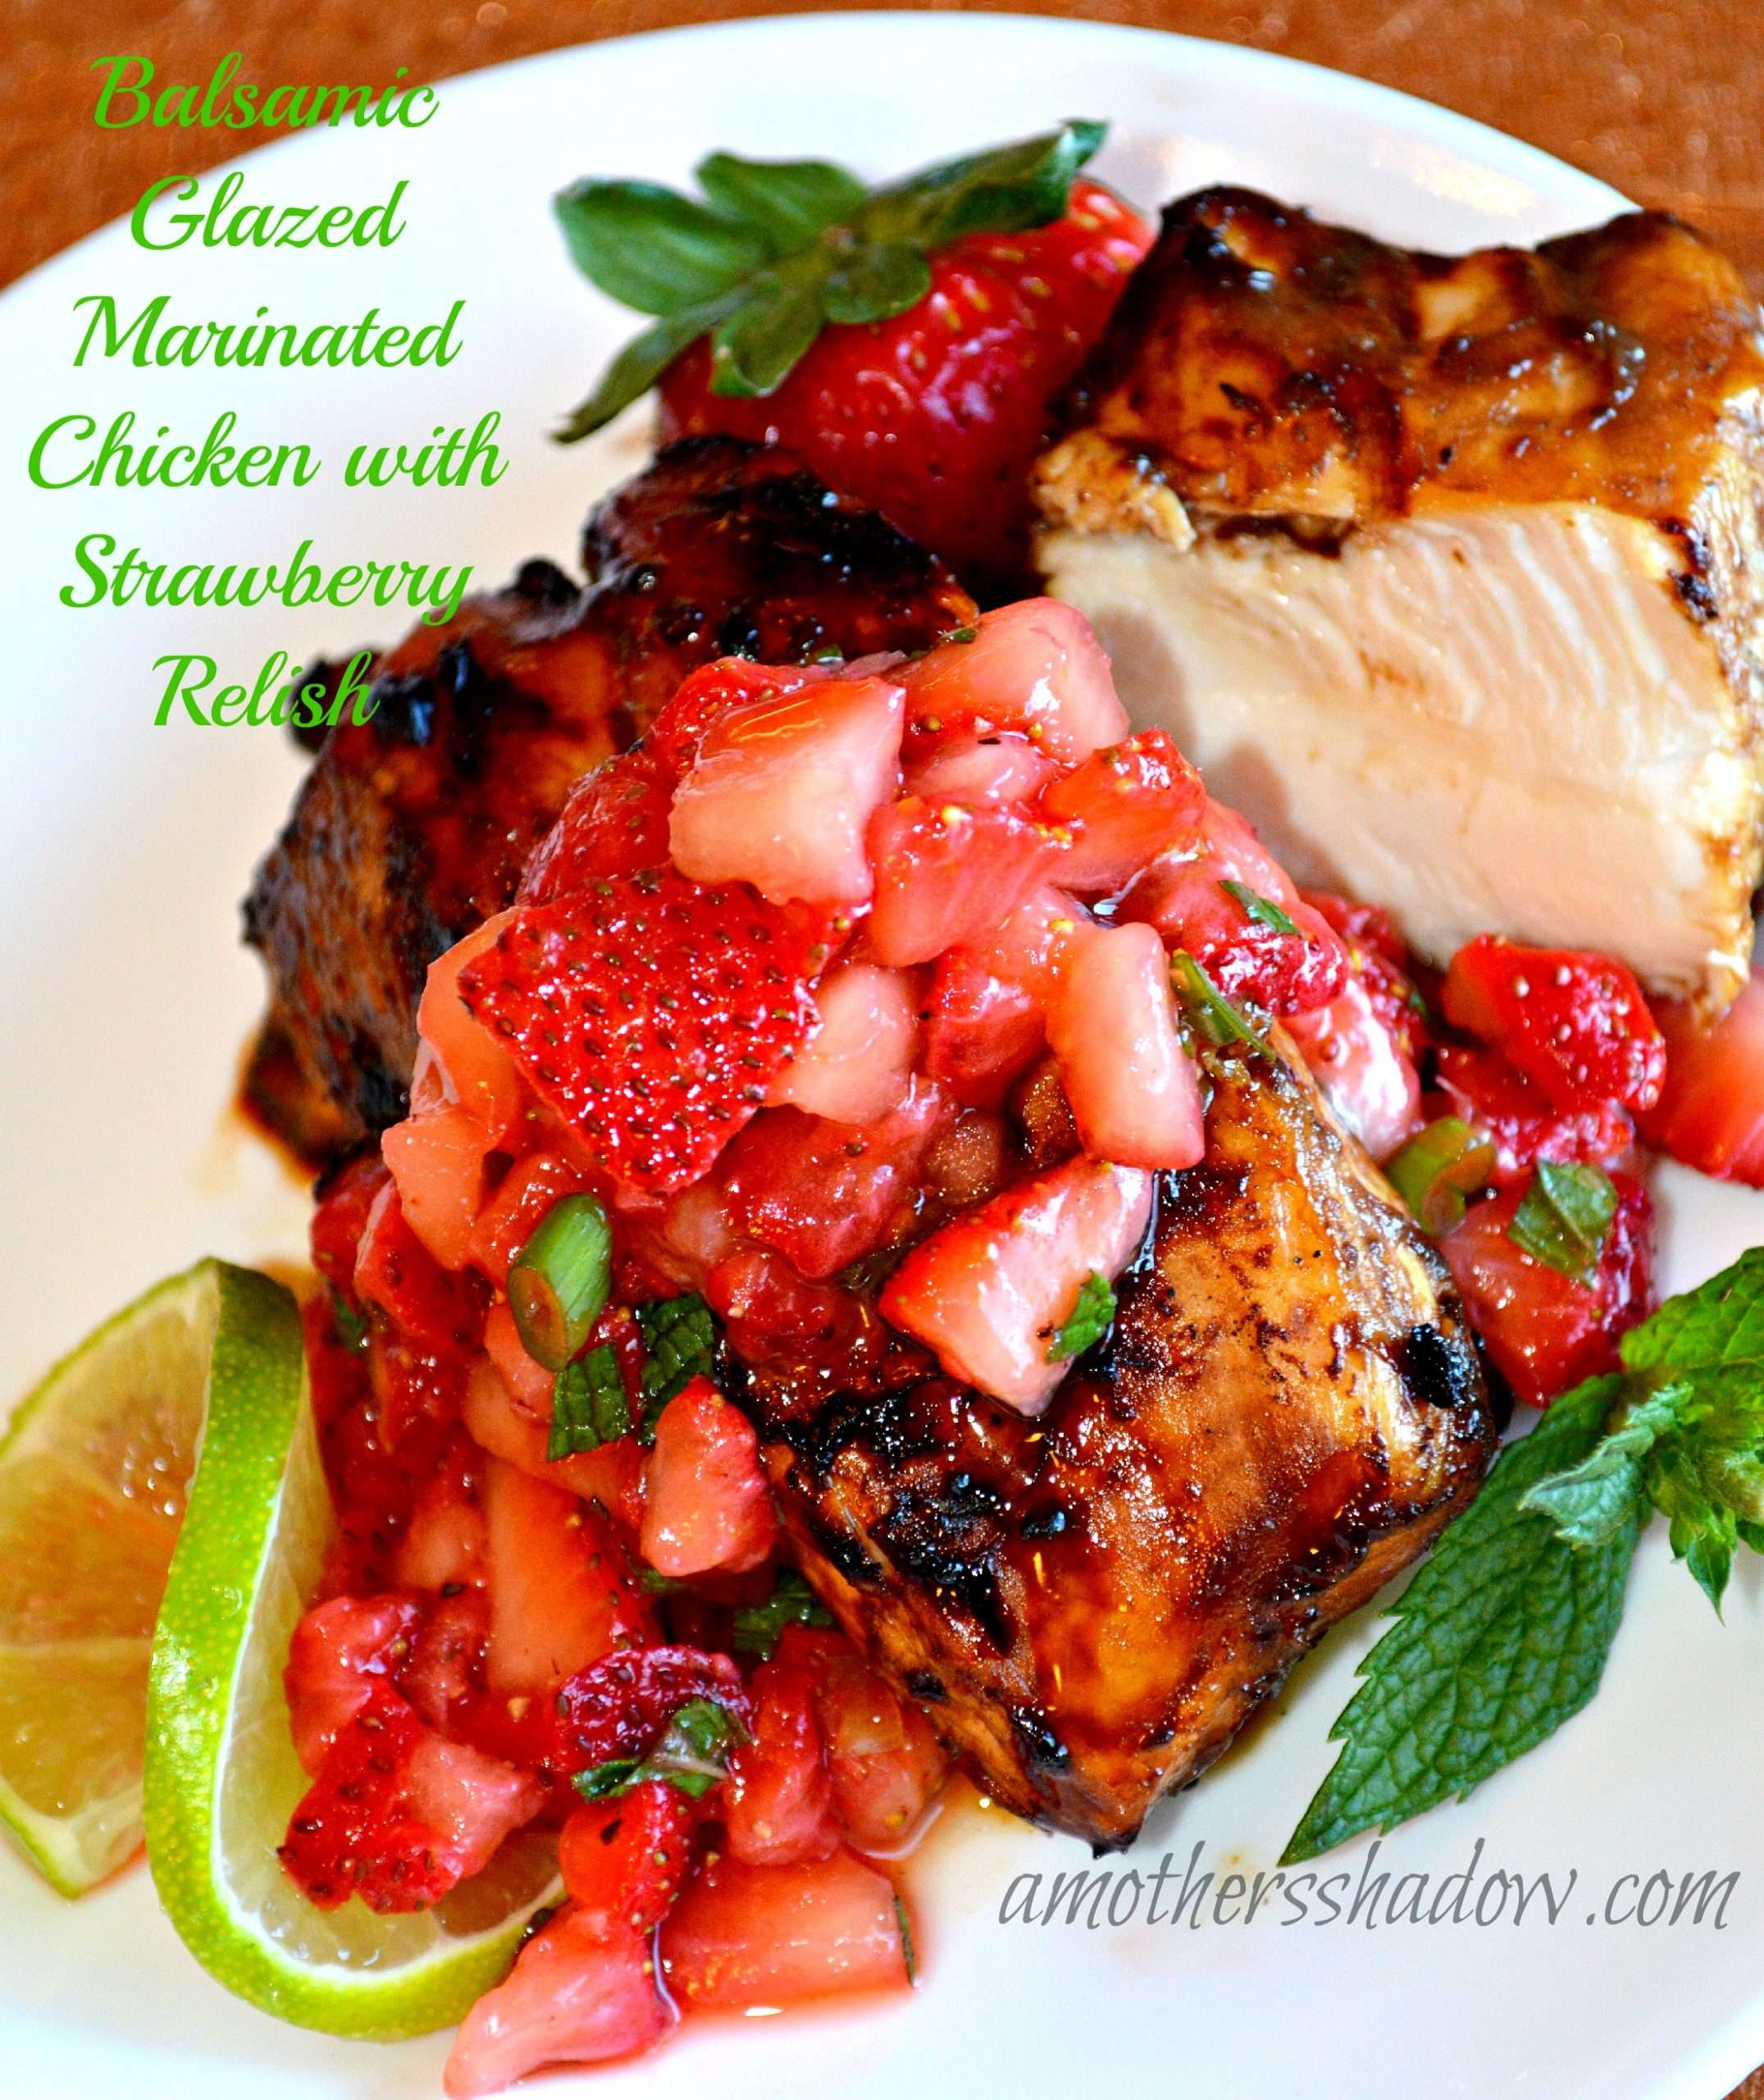 Balsamic Glazed Marinated Chicken with Strawberry Relish